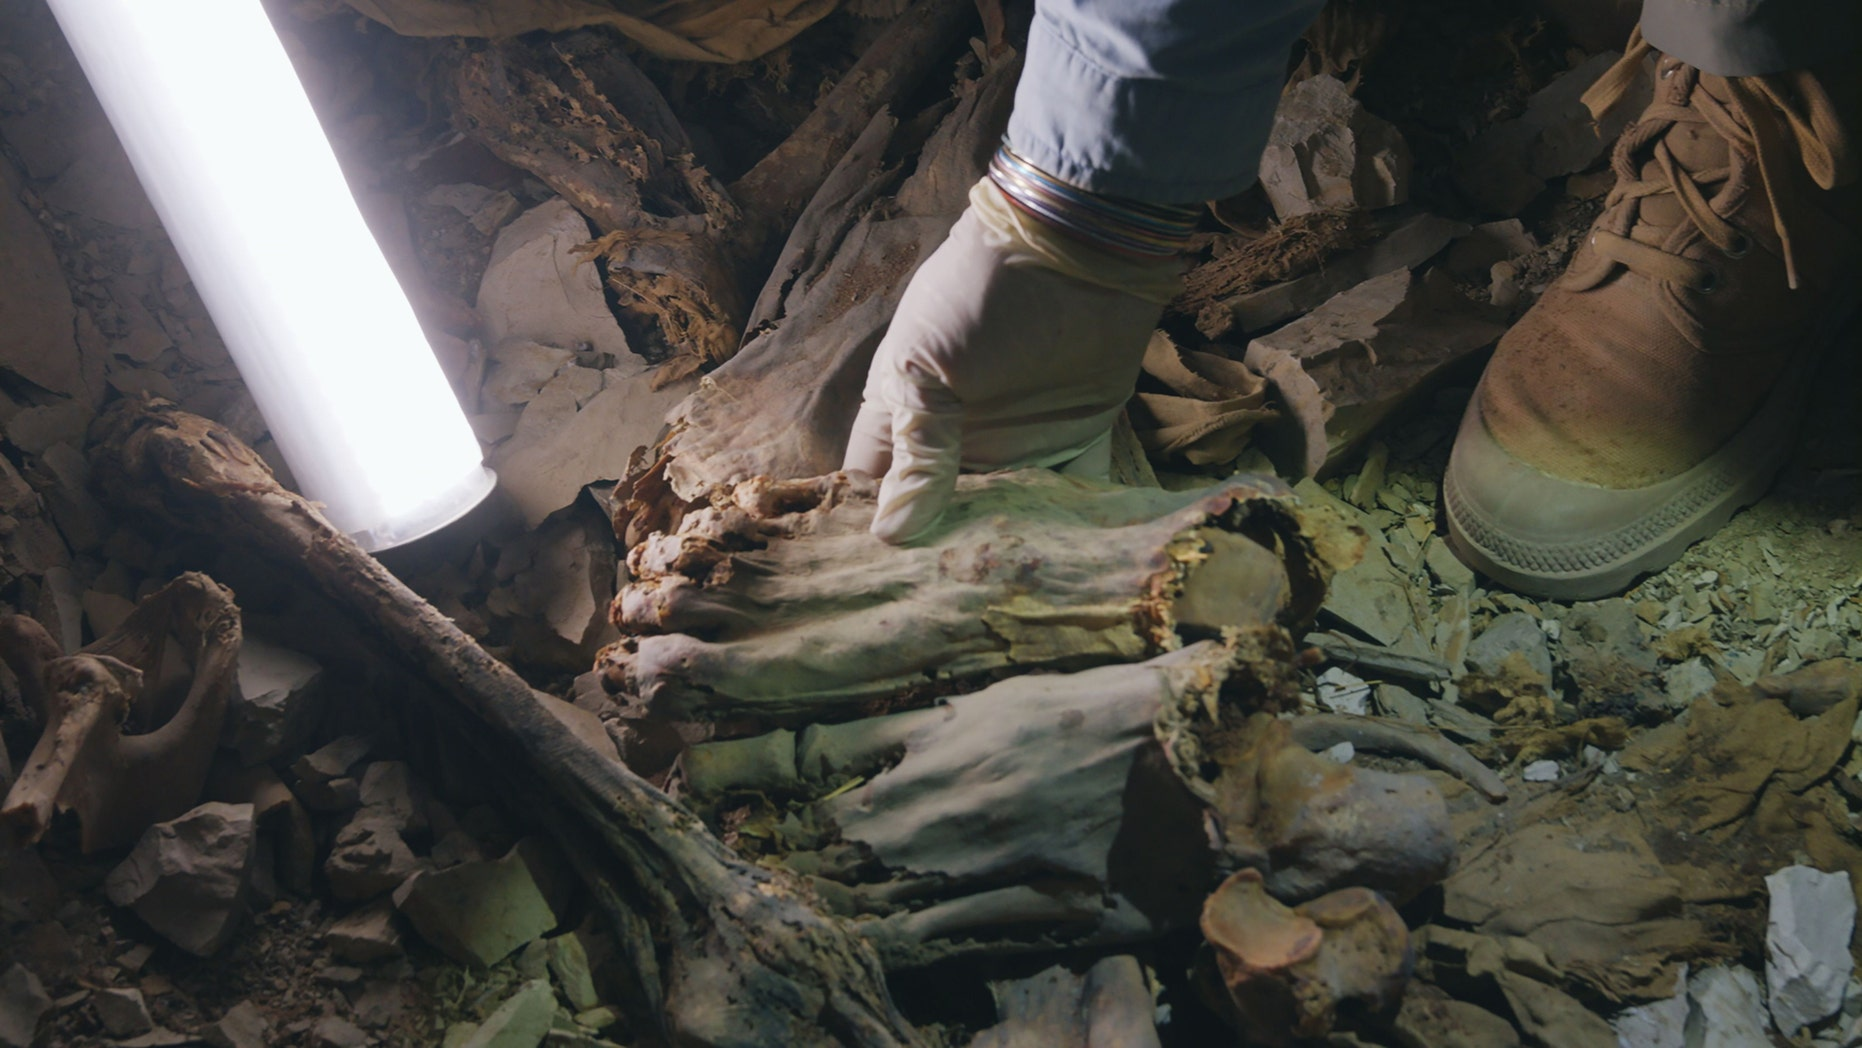 Westlake Legal Group ancient-egypt-mummies 60 Ancient Egyptian mummies entombed together died 'bloody, fearsome deaths' Mindy Weisberger, Senior Writer LiveScience fox-news/science/archaeology/ancient-egypt fnc/science fnc article 220553d3-e279-5ff5-b0c1-9bdc0e971673